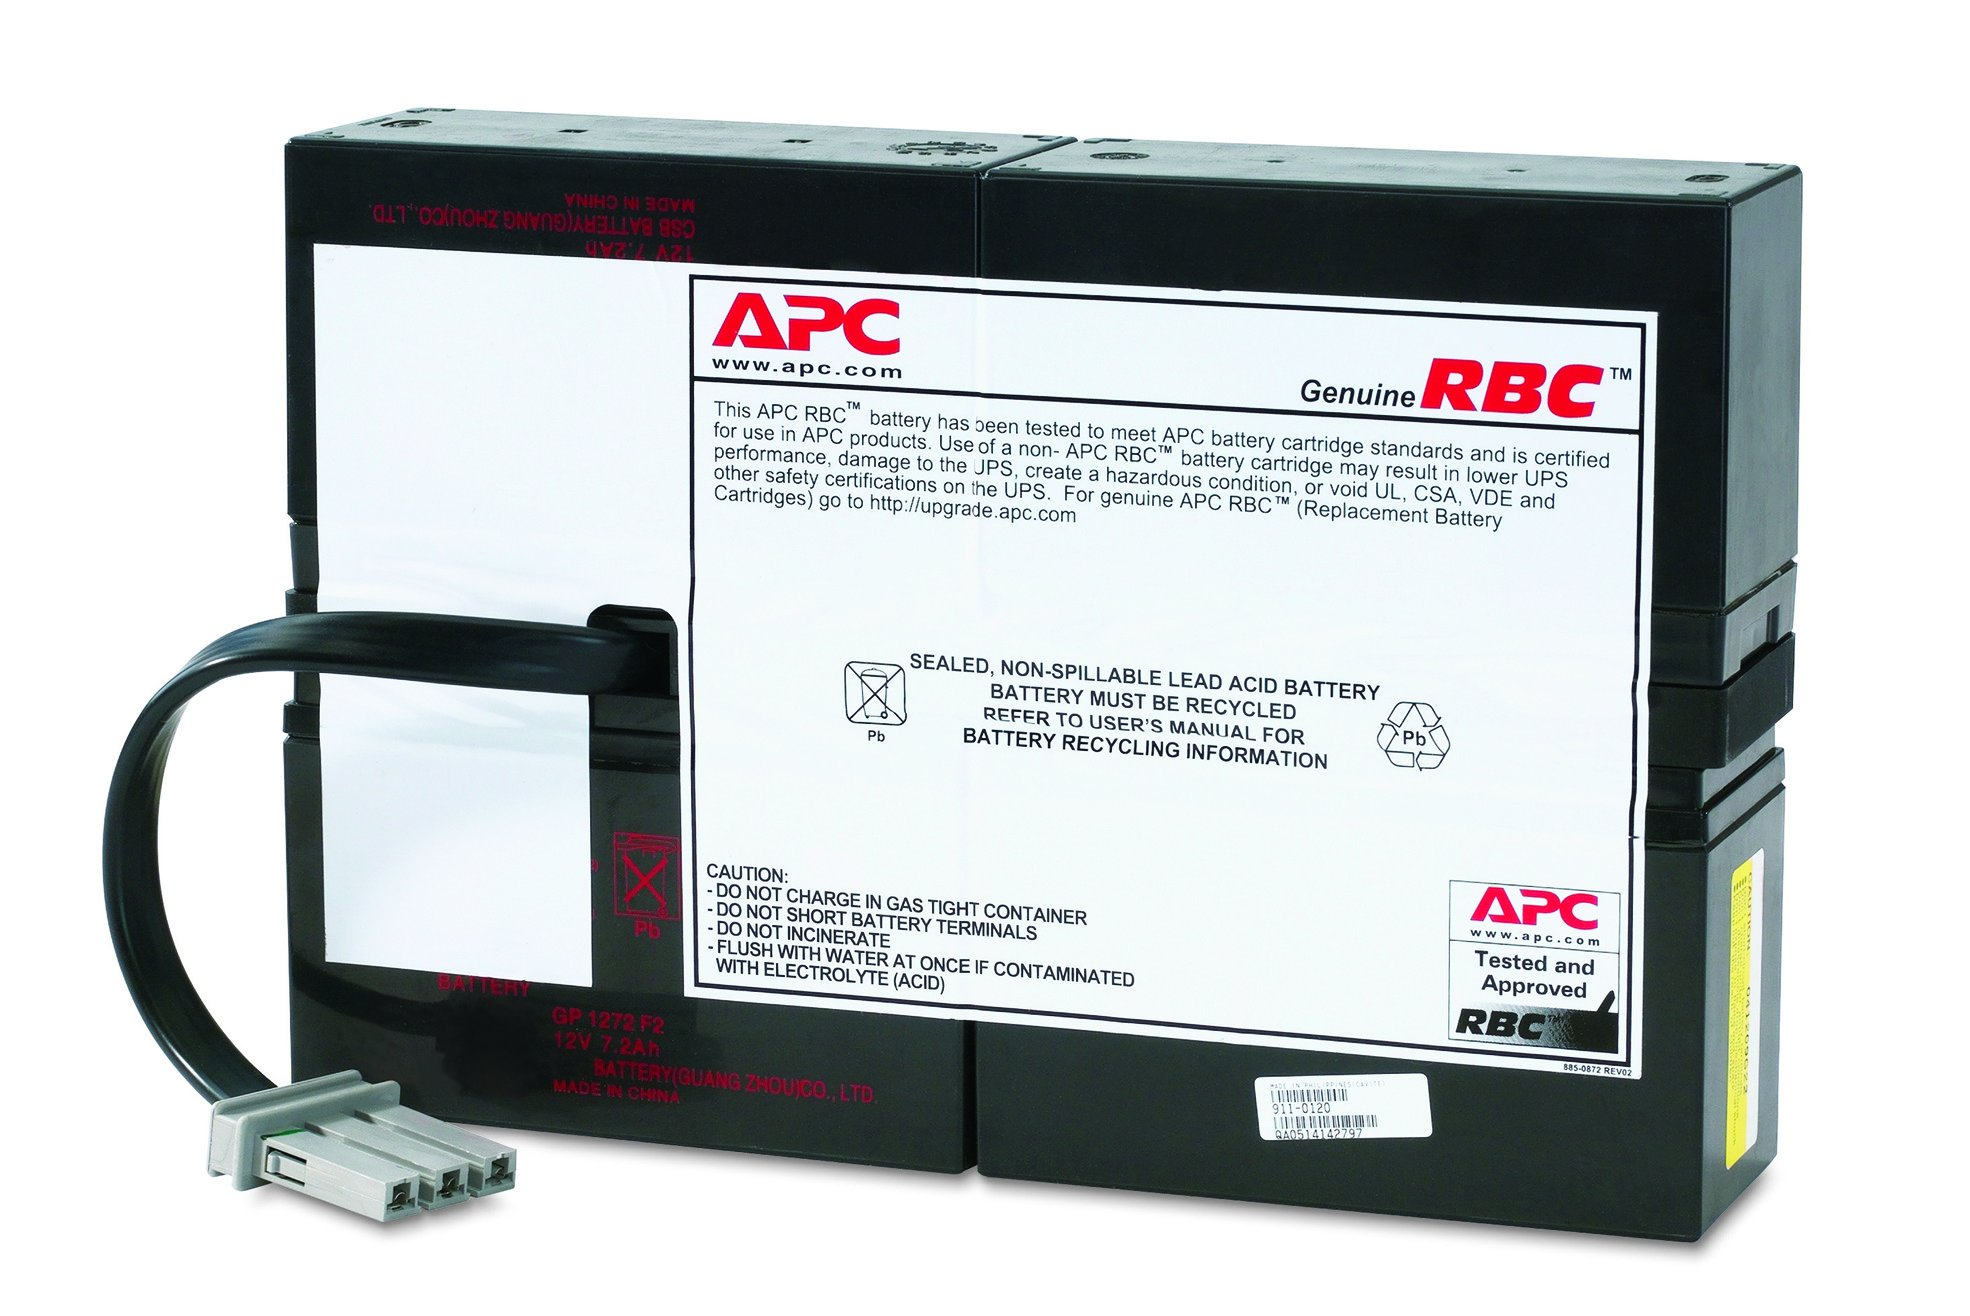 Amazon.com: APC UPS Battery Replacement for APC Smart-UPS Model SC1500  (RBC59): Electronics